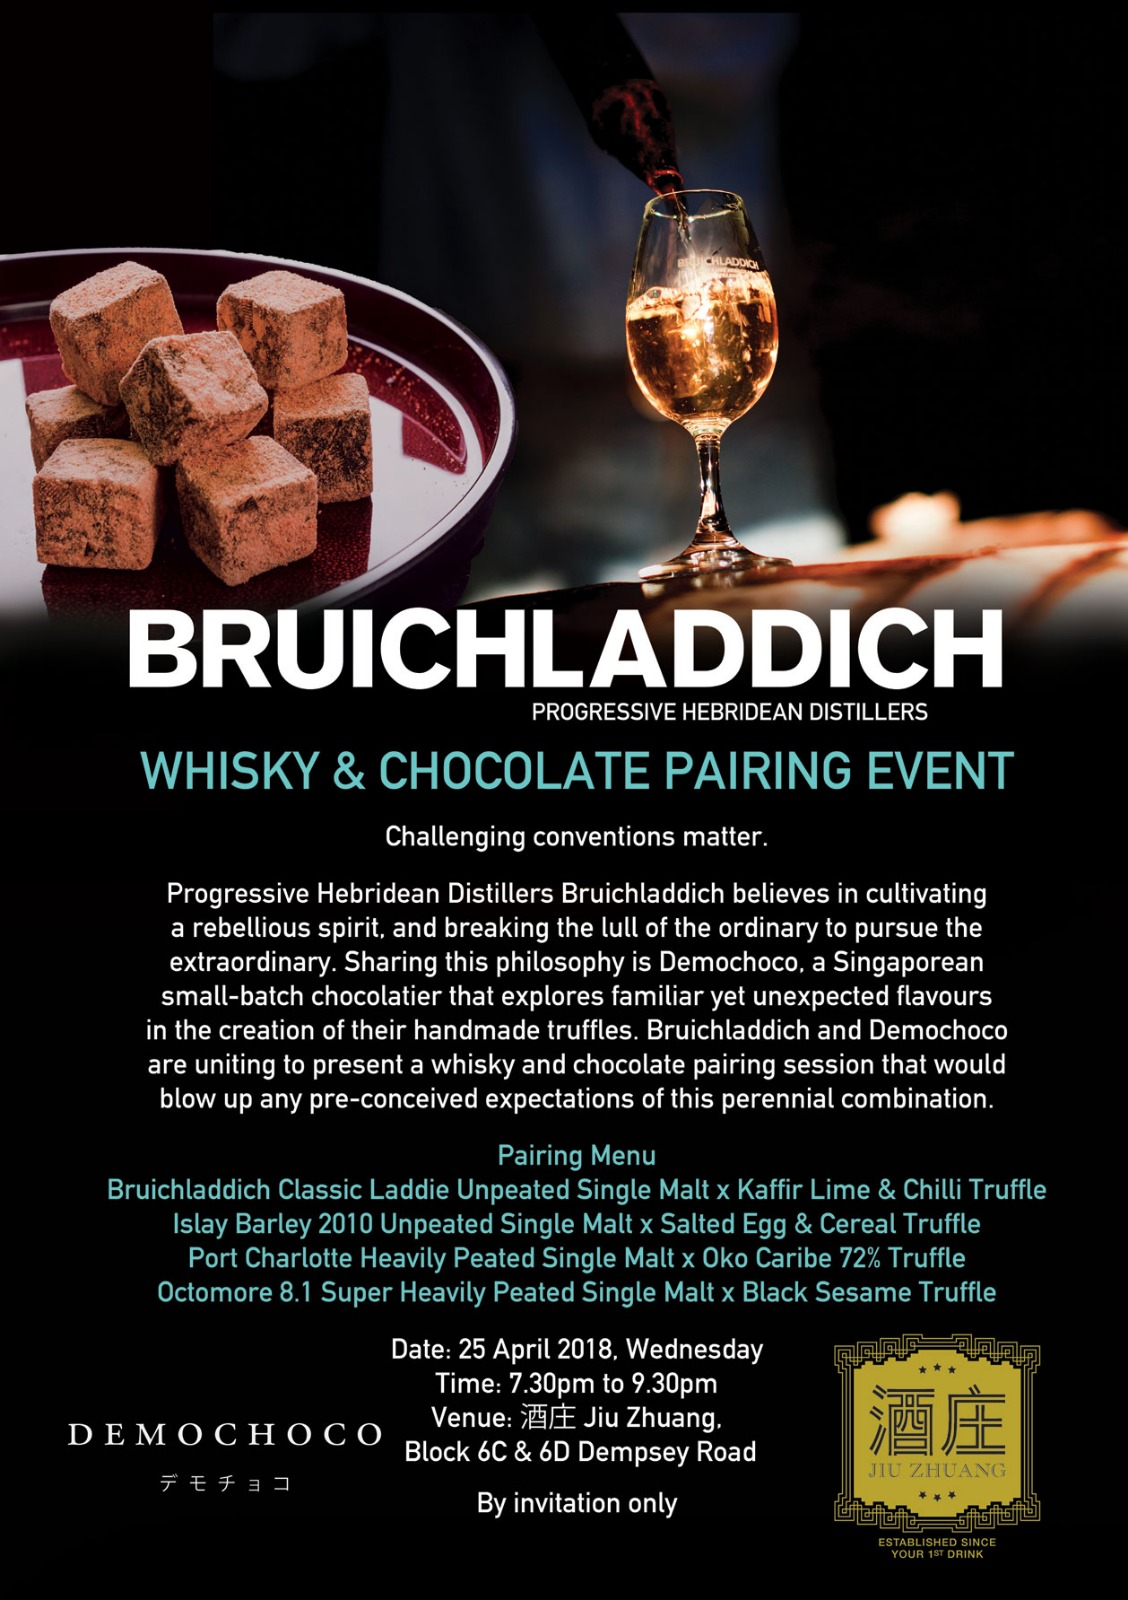 BRUICHLADDICH_WHISKY_CHOCOLATE_PAIRING_EVENT